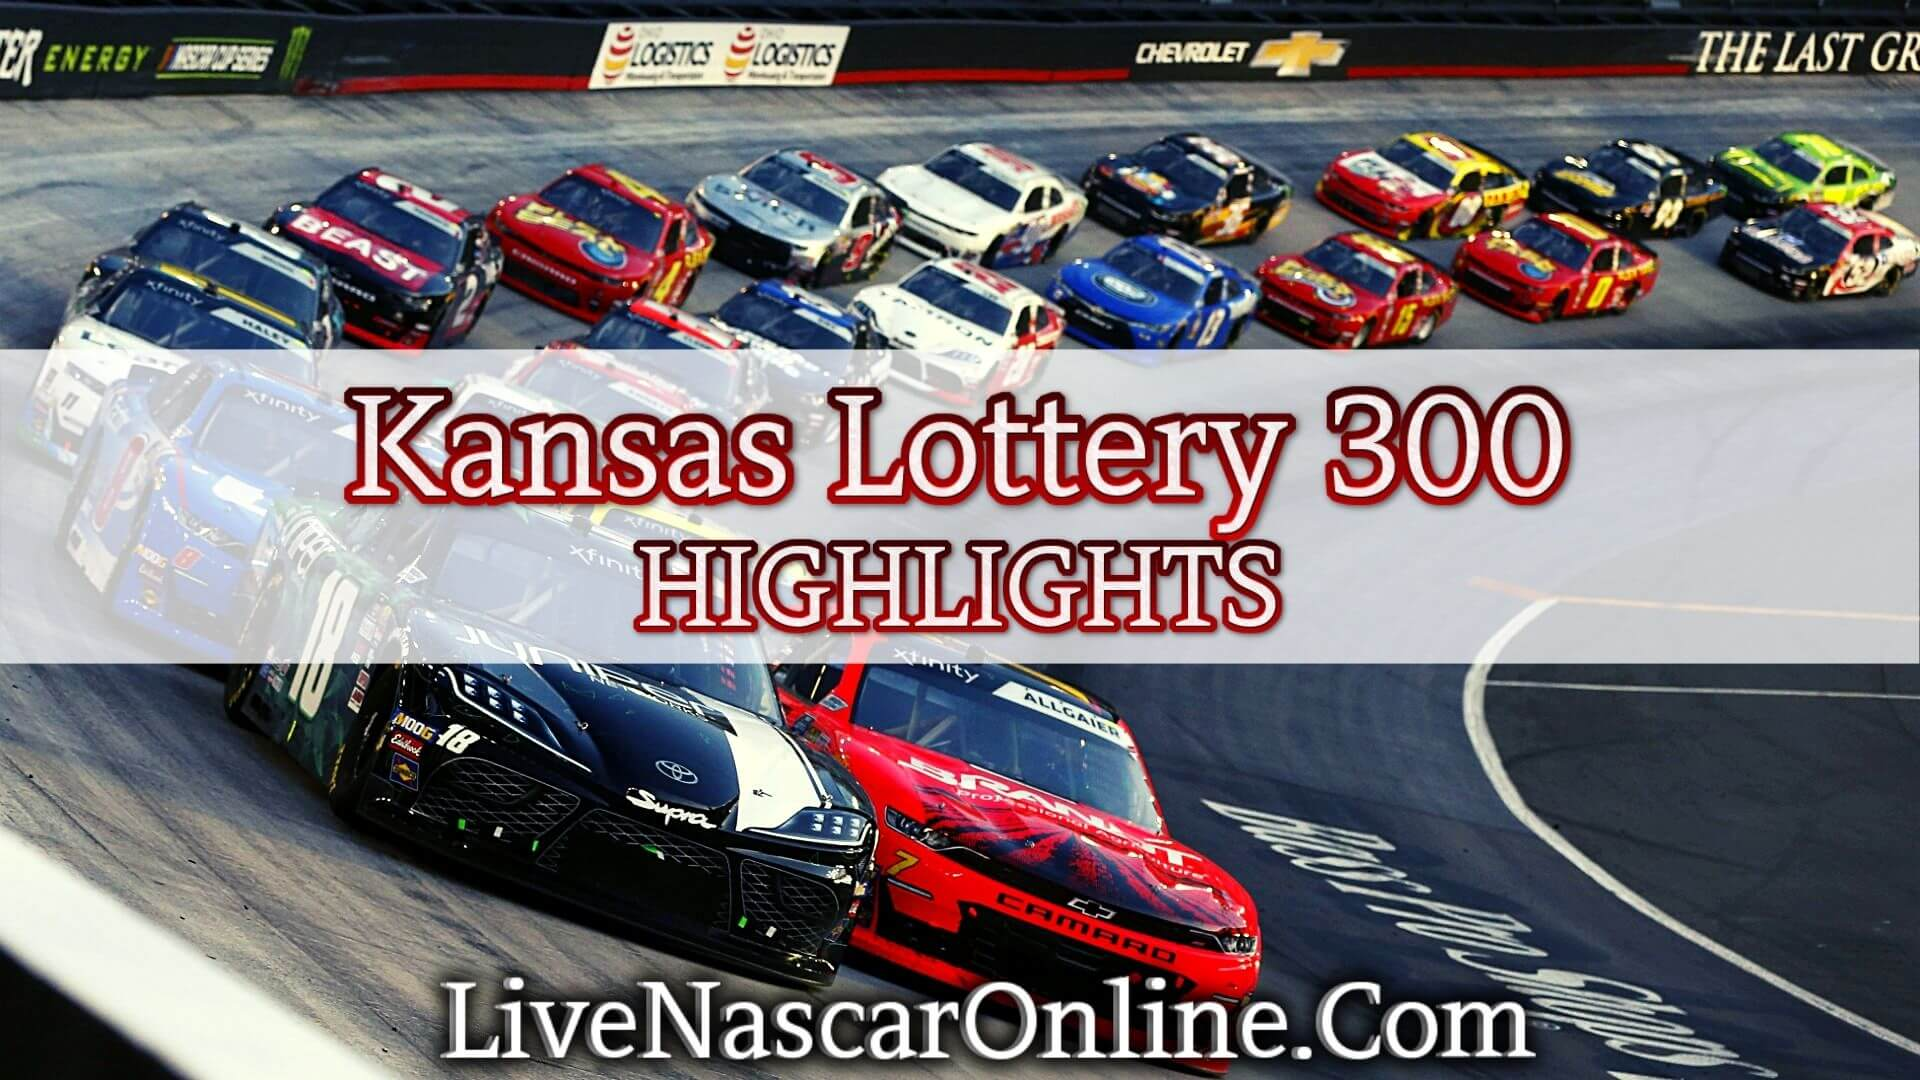 Kansas Lottery 300 Highlights 2020 Xfinity Series